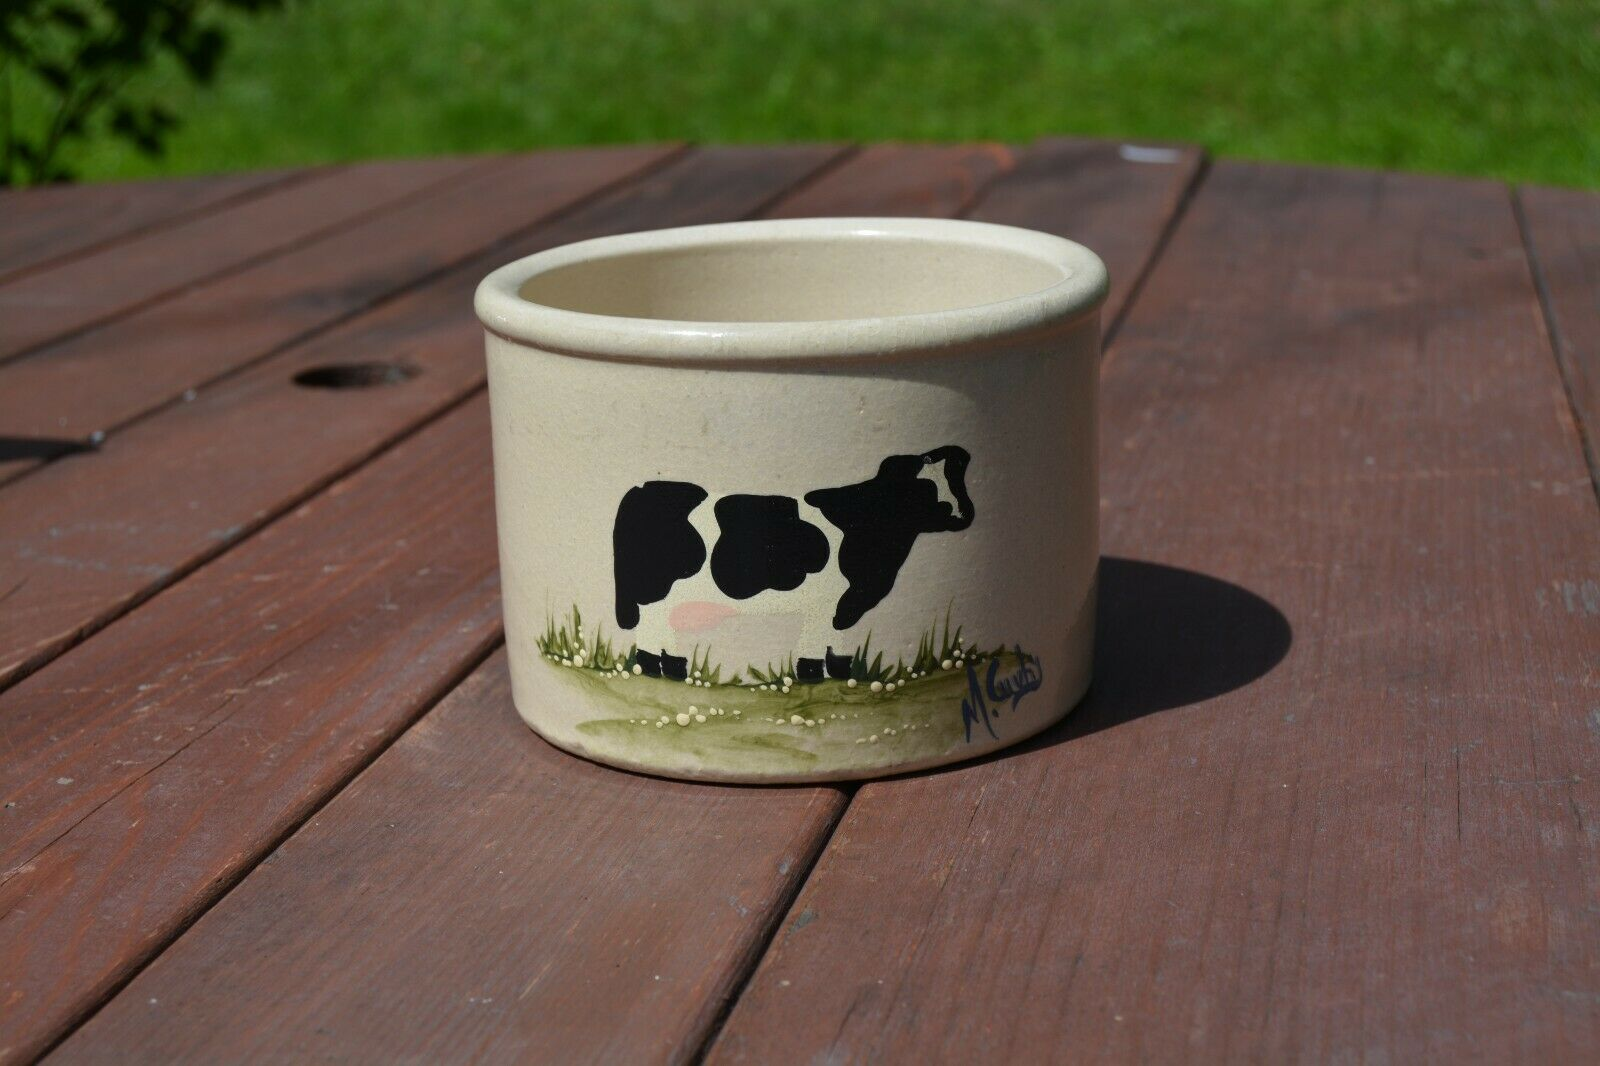 Vintage Ransbottom Low Jar W/ Hand Painted Cow By M. Cuvhy  - $29.99